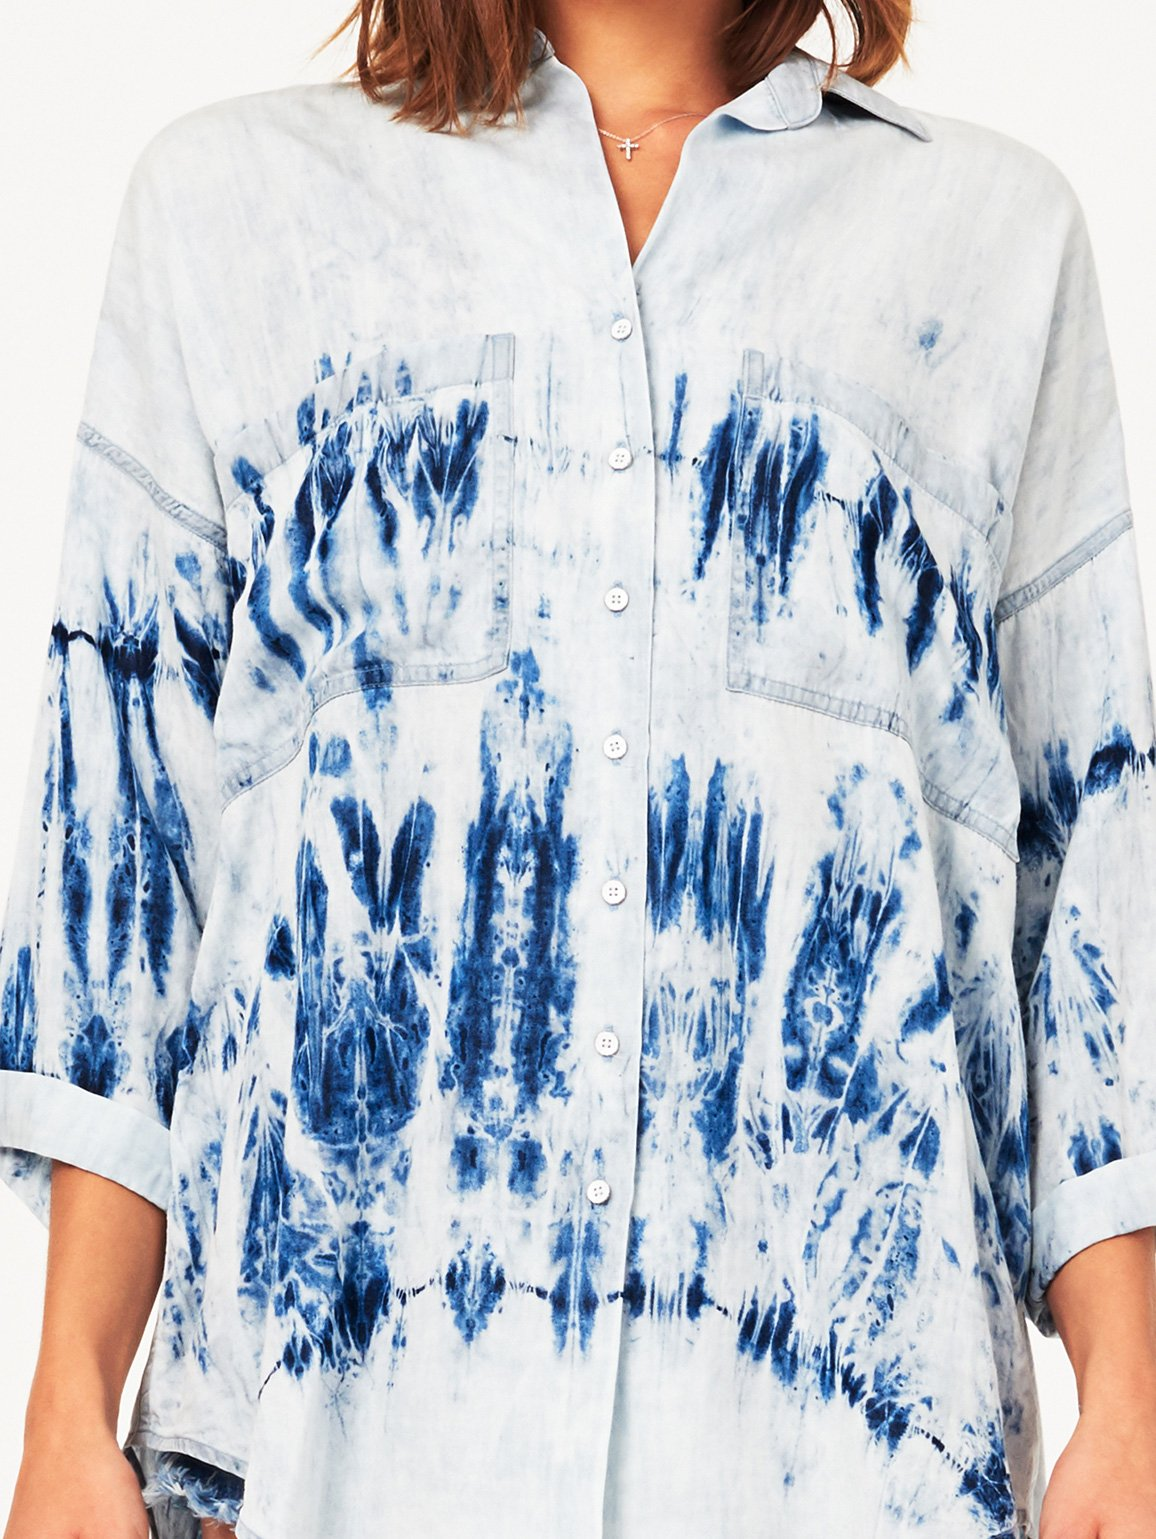 Hester & Orchard Top Tie Dye